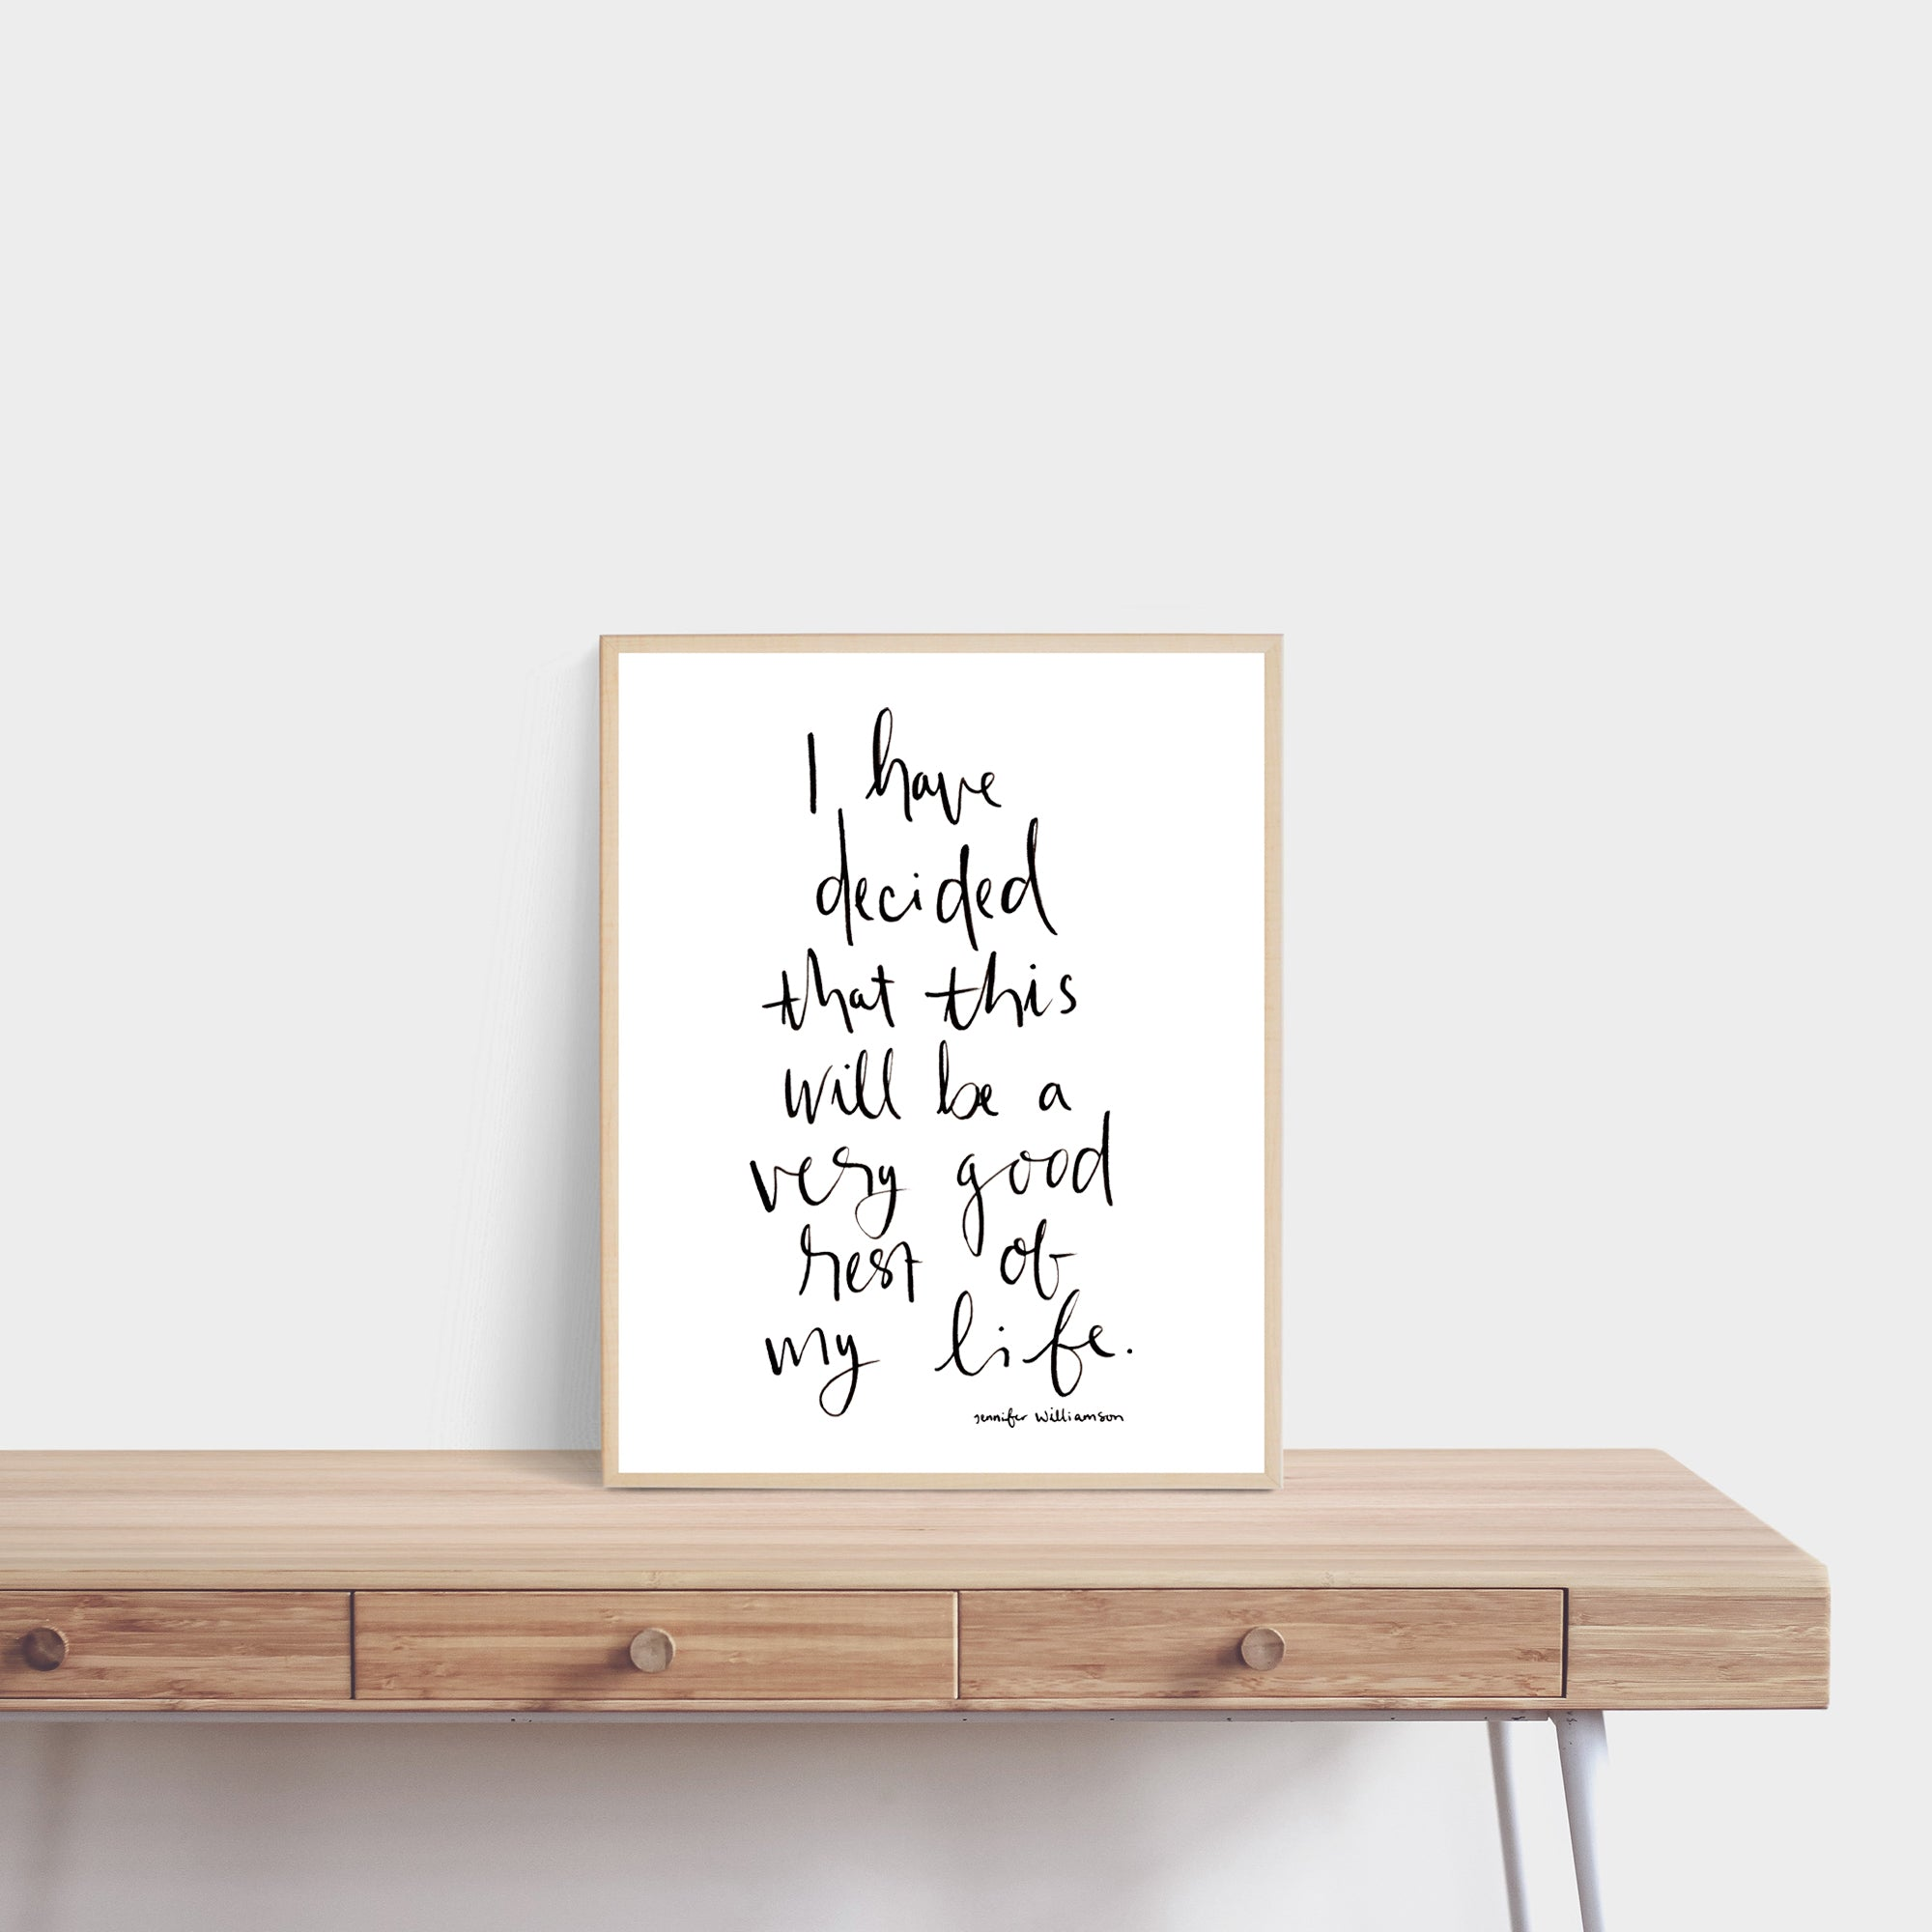 A Very Good Rest Of My Life Hand Lettered Affirmation Art Print